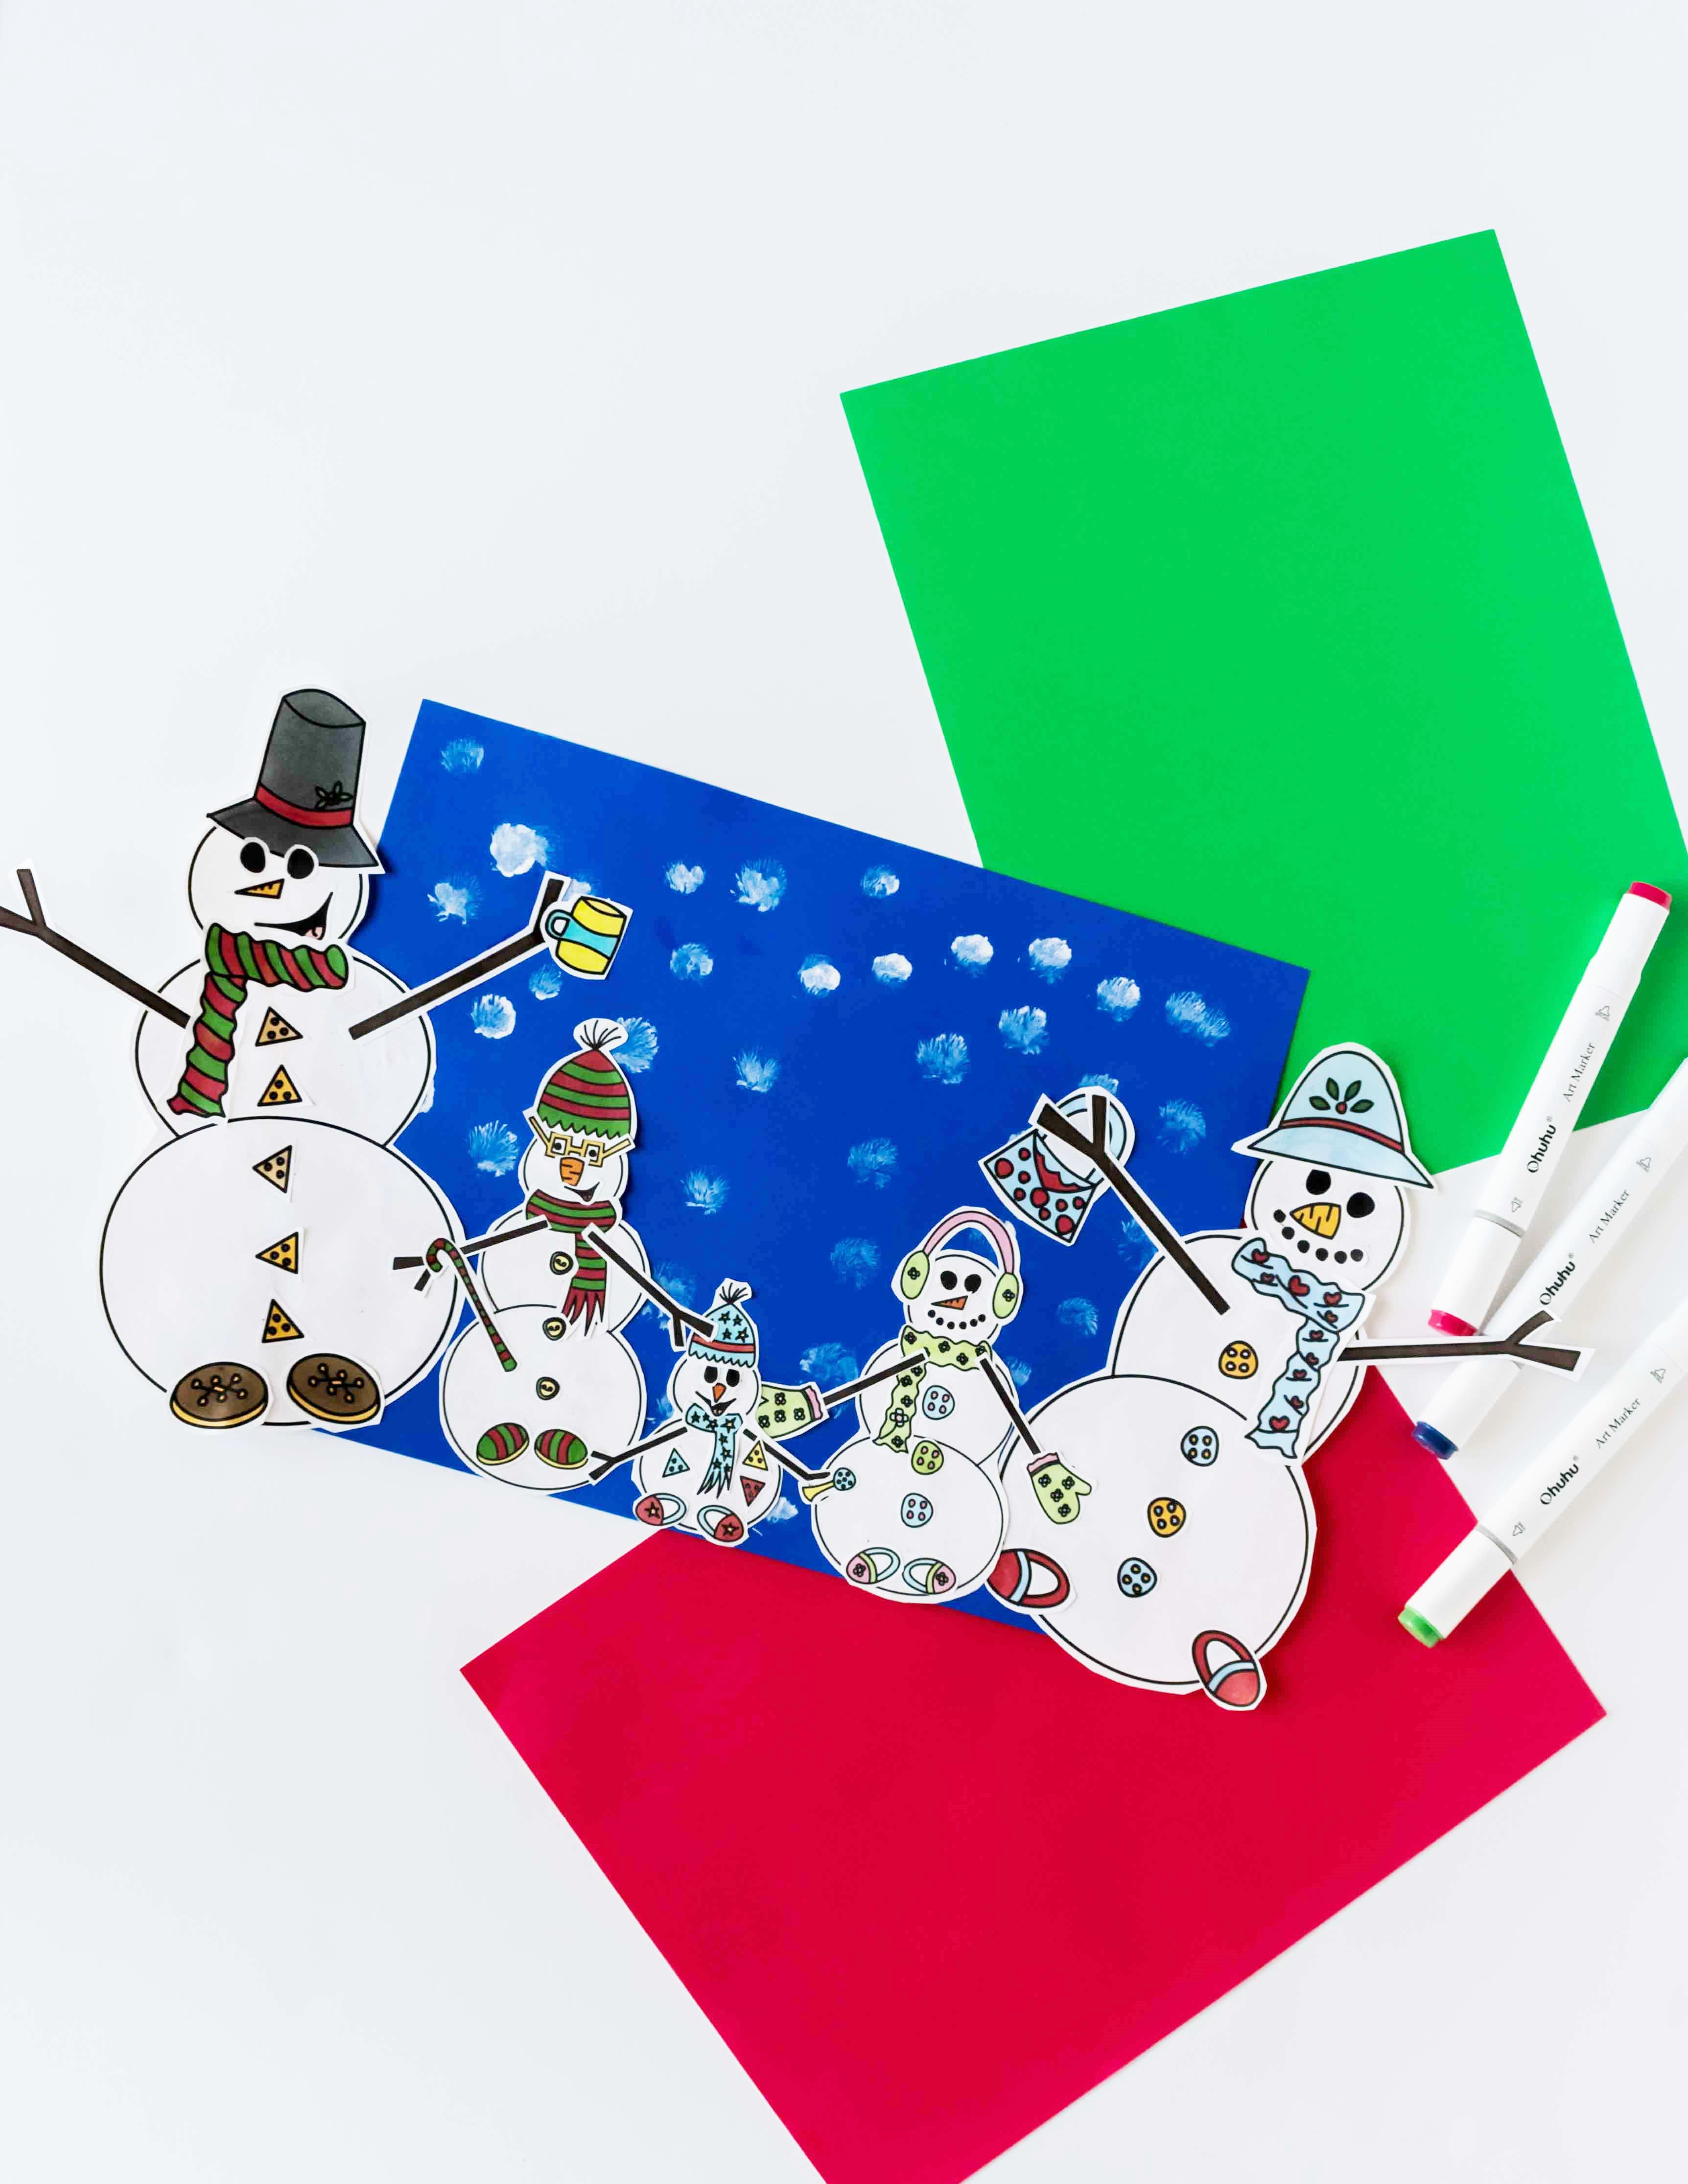 Sometimes it can be very cold outside and the little ones still need to have some fun! Am I right? No worries, I got you covered :) Come and get this Build The Snowman's Family Free Printable! A great indoor winter craft for your kids to have fun :)